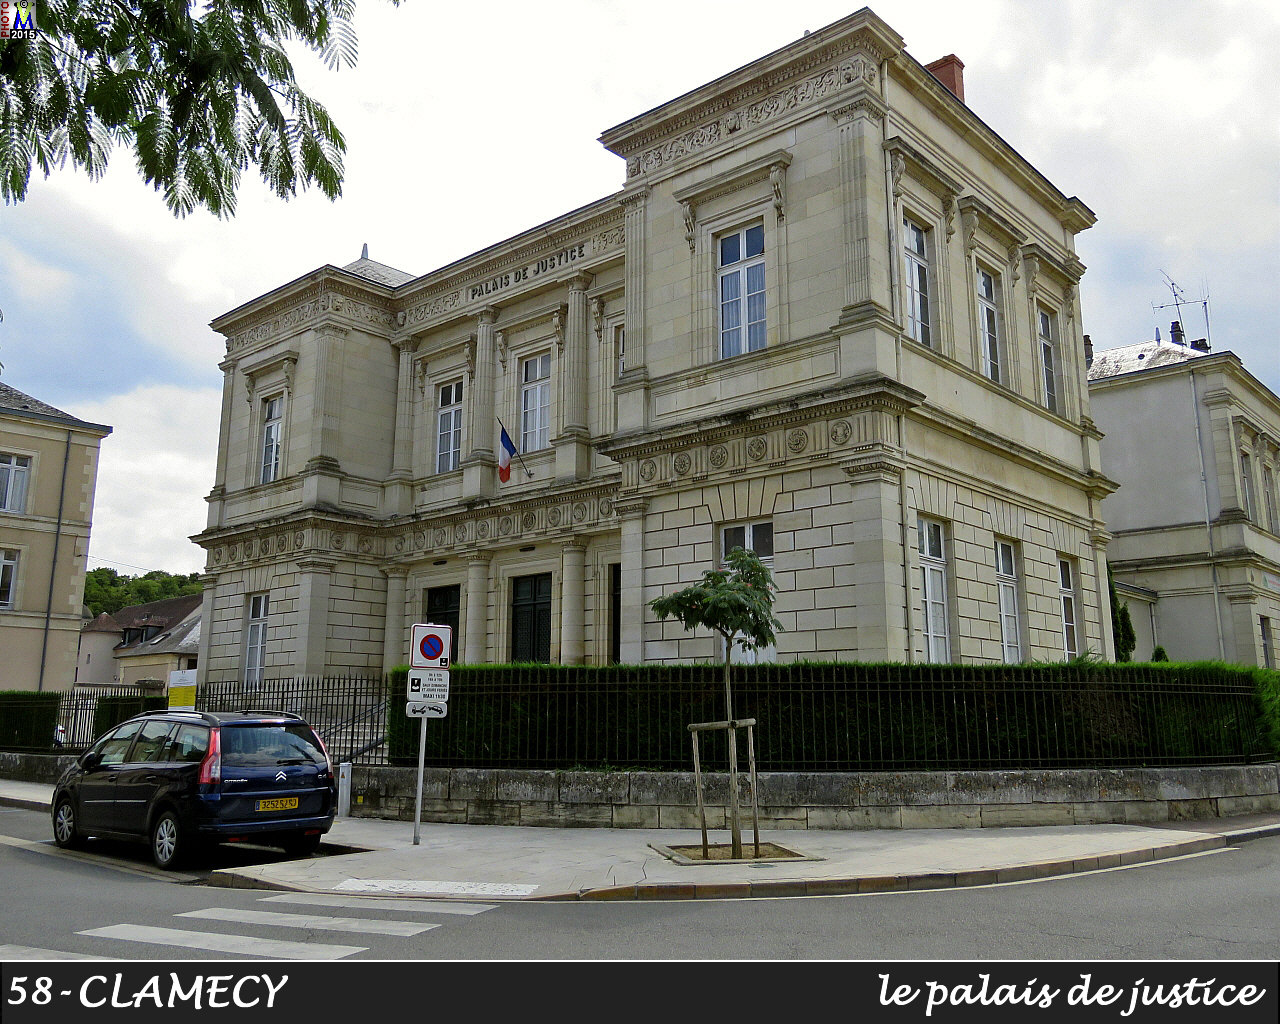 58CLAMECY-justice_100.jpg